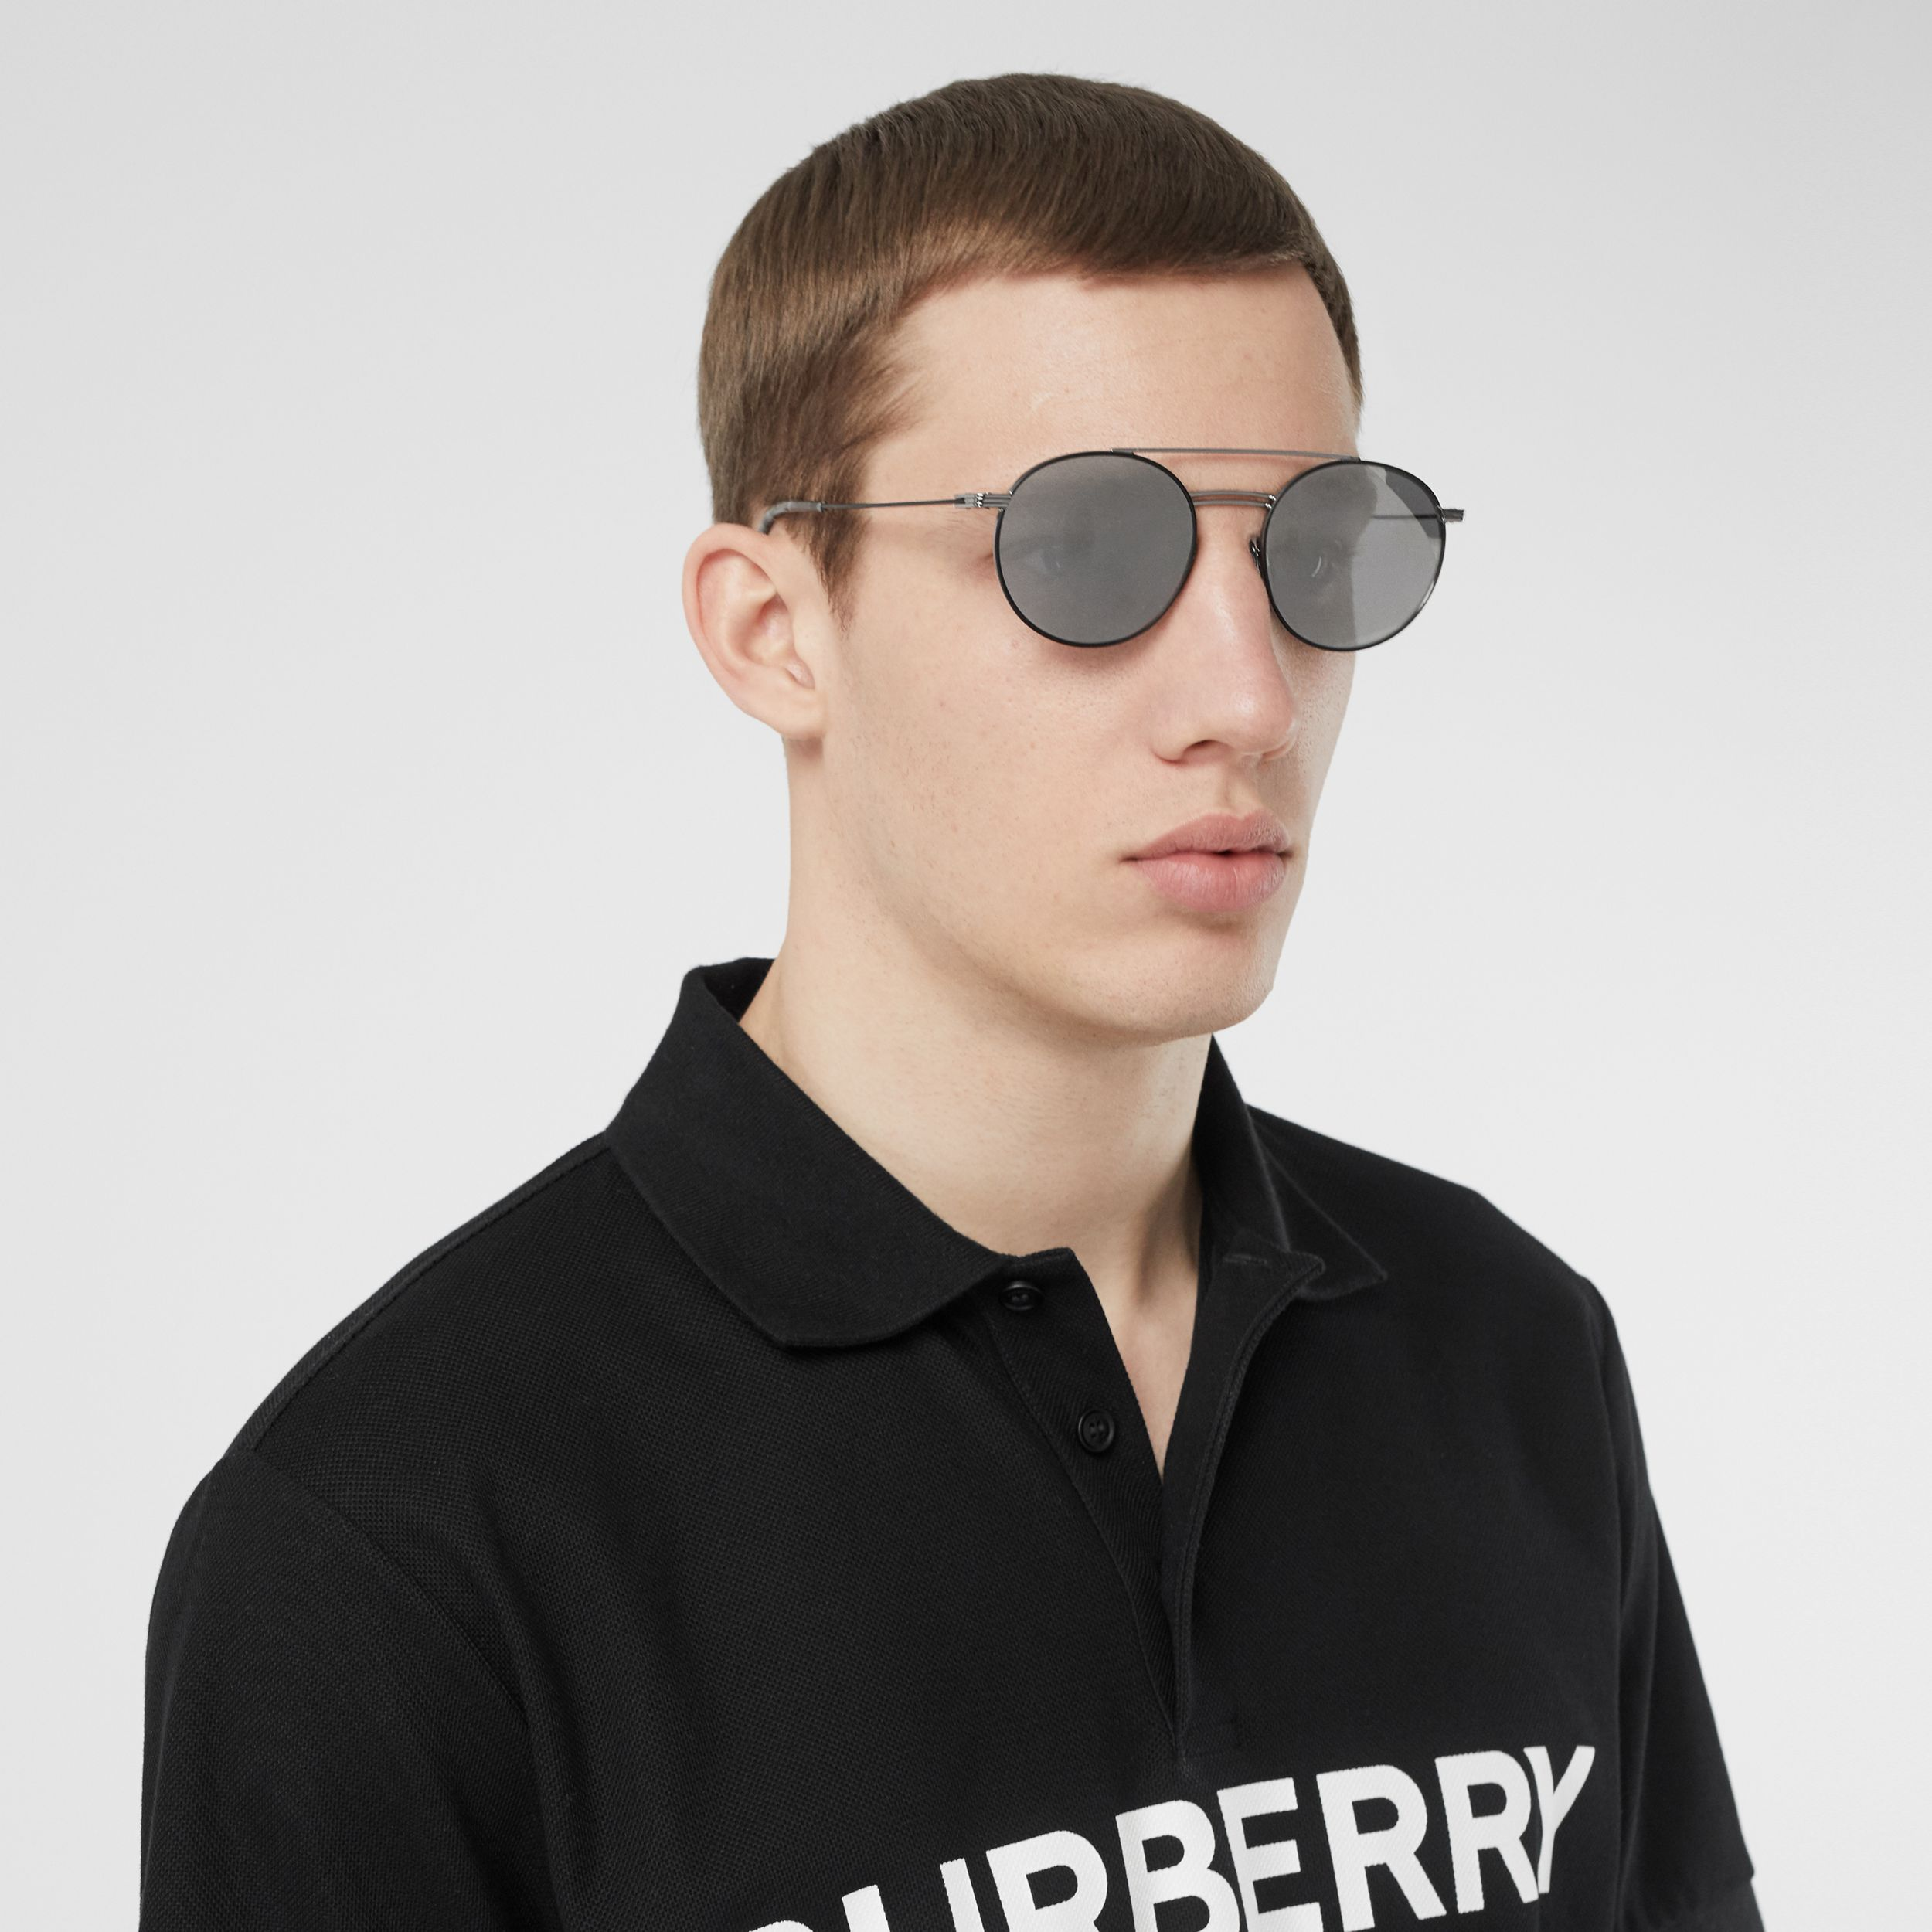 Top Bar Detail Round Frame Sunglasses in Gunmetal Grey - Men | Burberry - 3